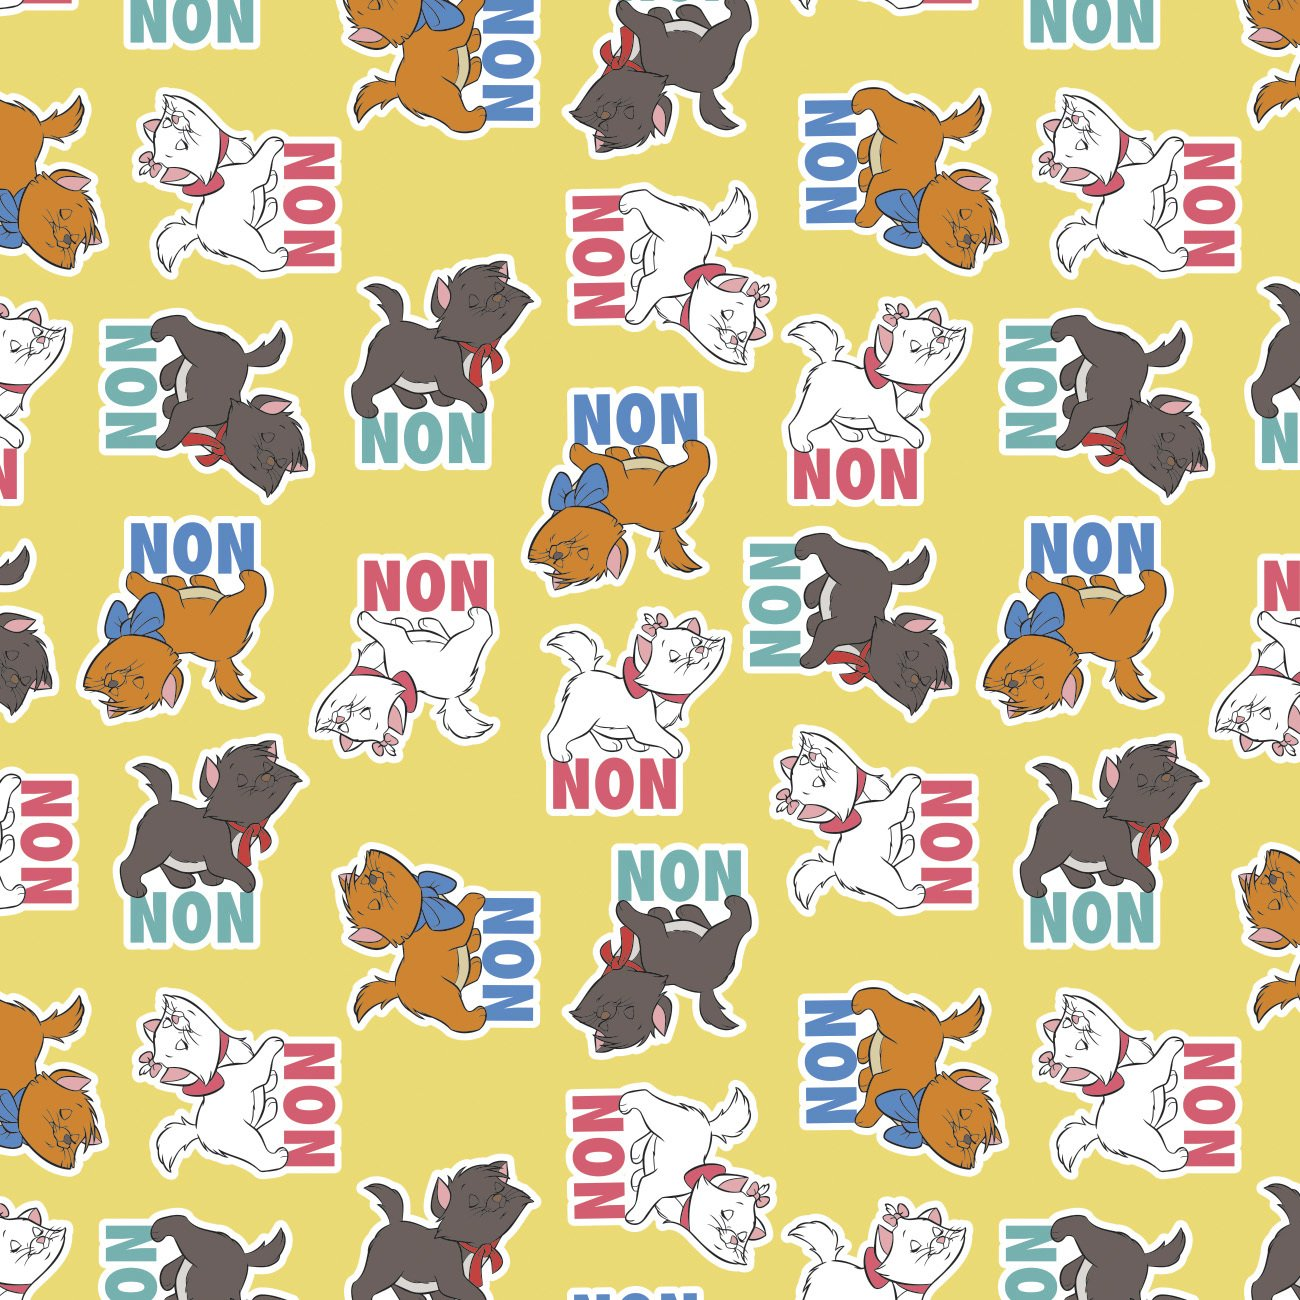 CF-The Aristocats 85030205-01 Yellow - Kittens Say Non